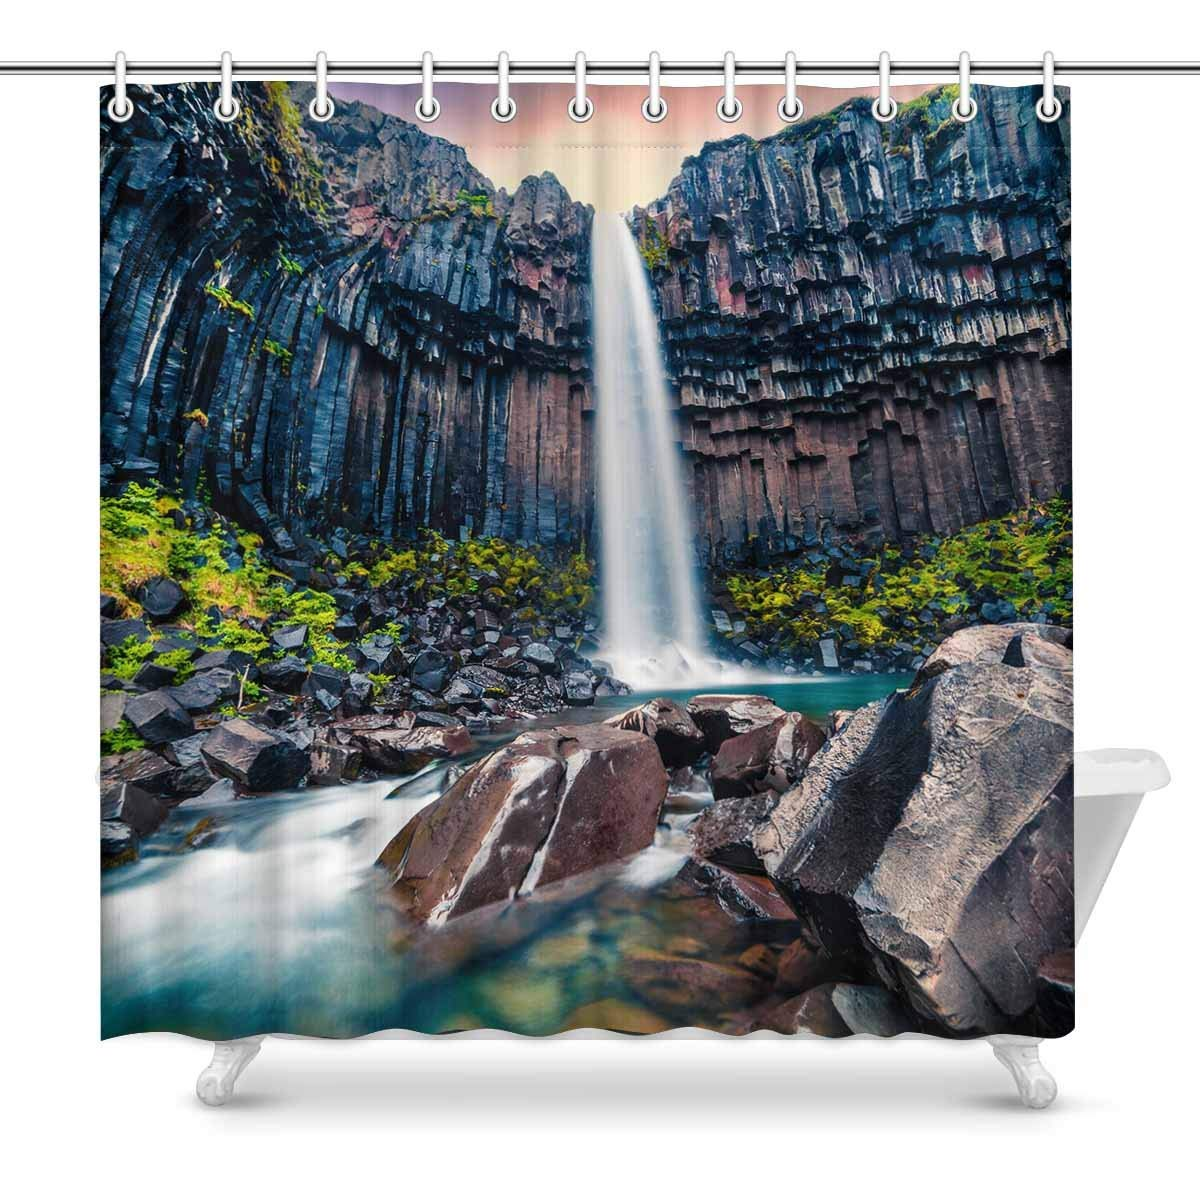 Gckg Dramatic Morning Natural View Shower Curtain Black Waterfall Polyester Fabric Shower Curtain Bathroom Sets 66x72 Inches